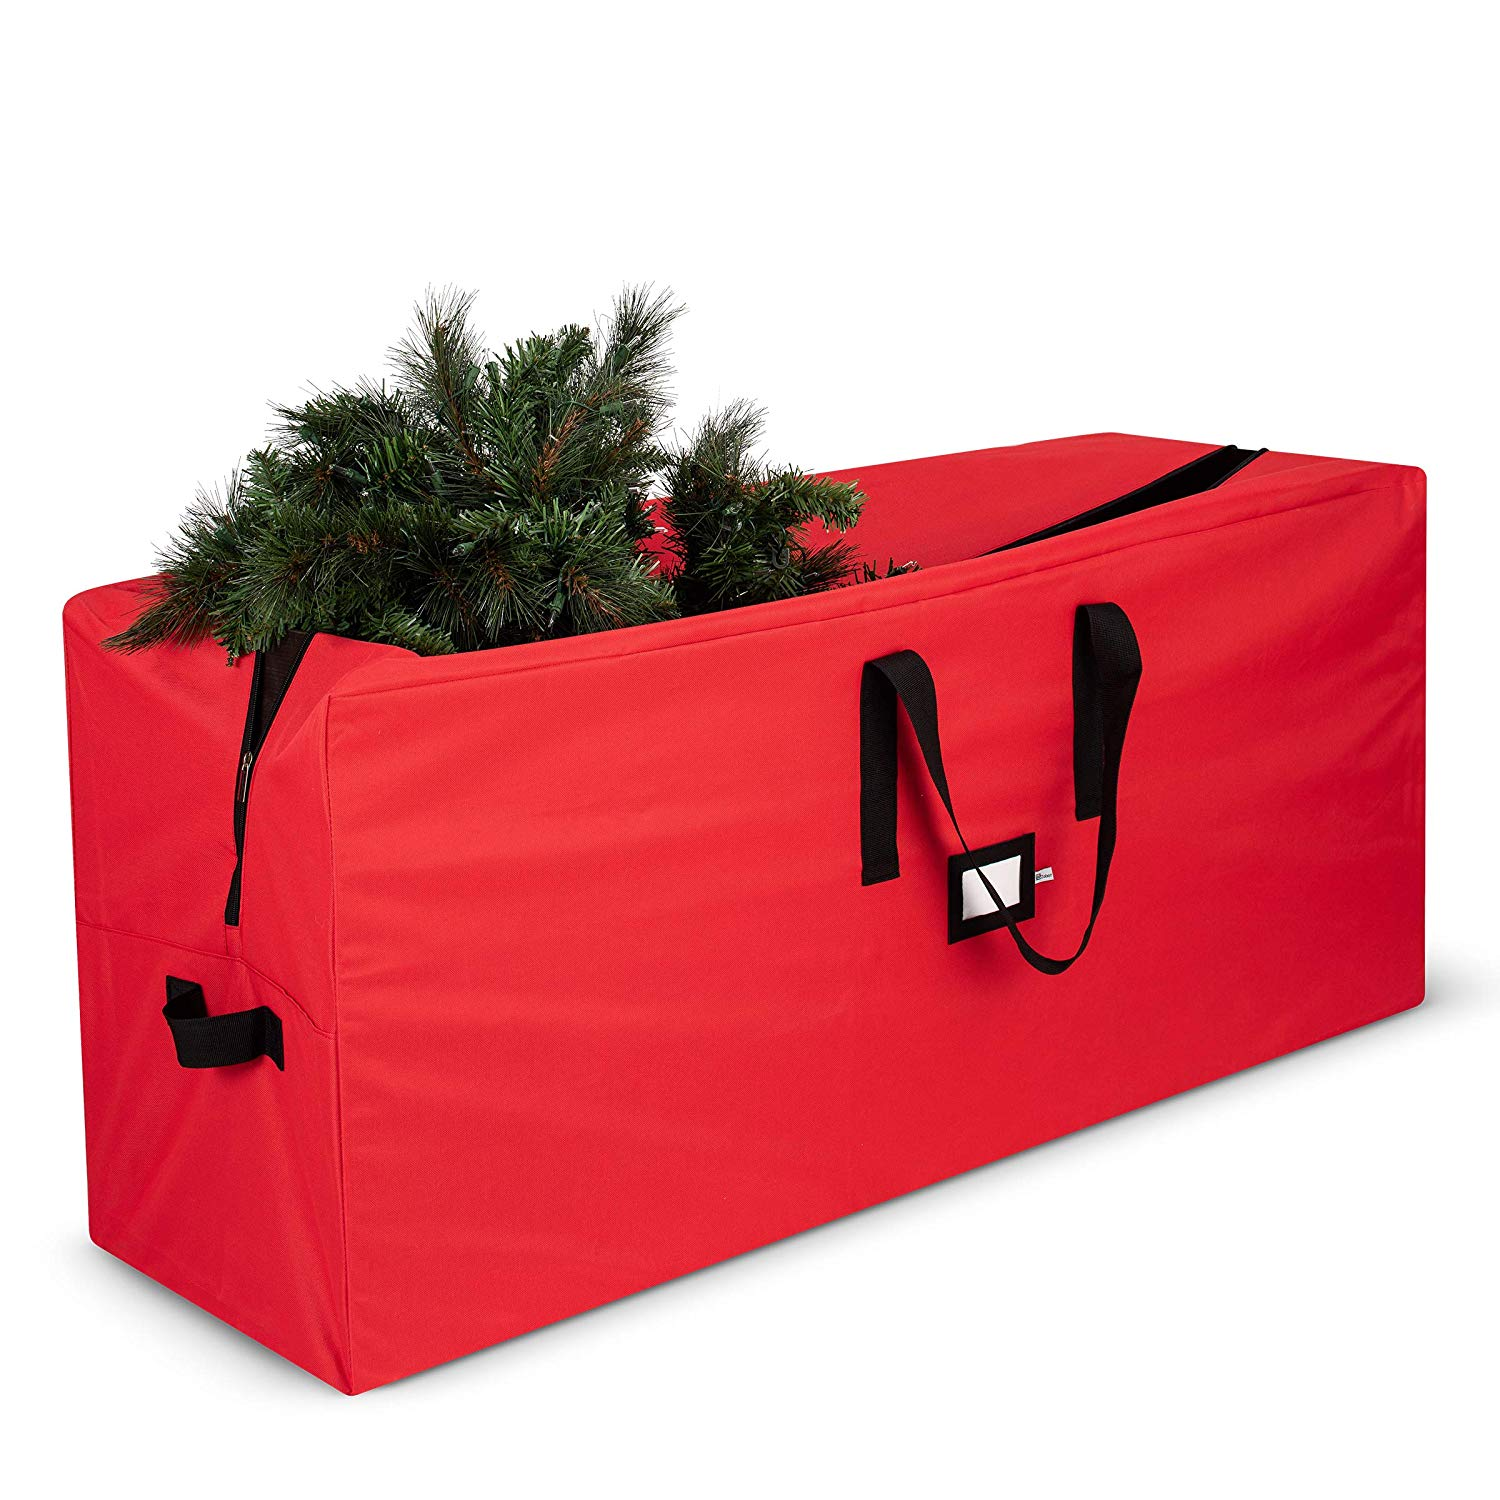 "Premium Holiday Christmas Tree Storage Bag 48""""L X 20""""H X 15""""D, Premium 600D Polyester Organizer with Sleek Zipper for Un-Assembled Trees Up to 7 Ft, Red"